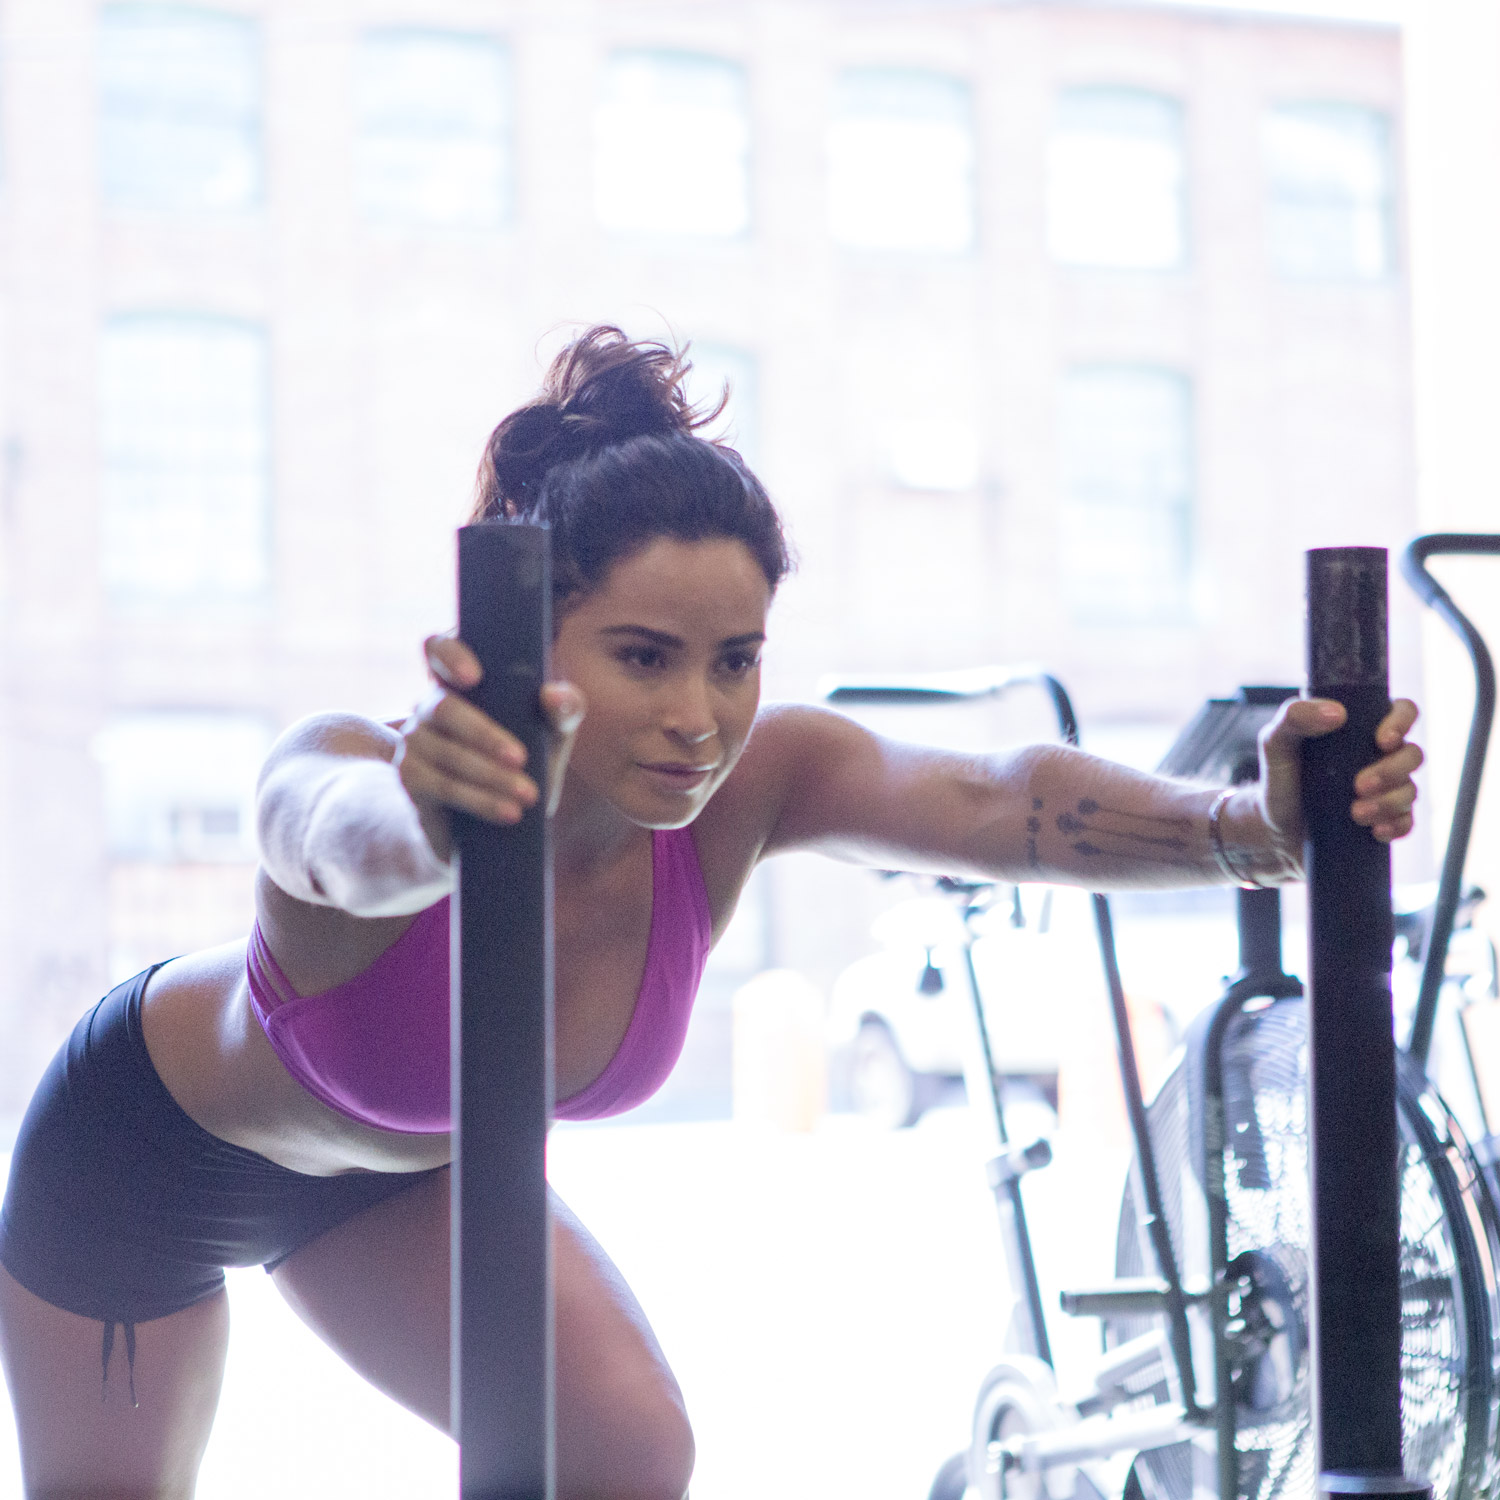 Sled pushes utilize glute strength.